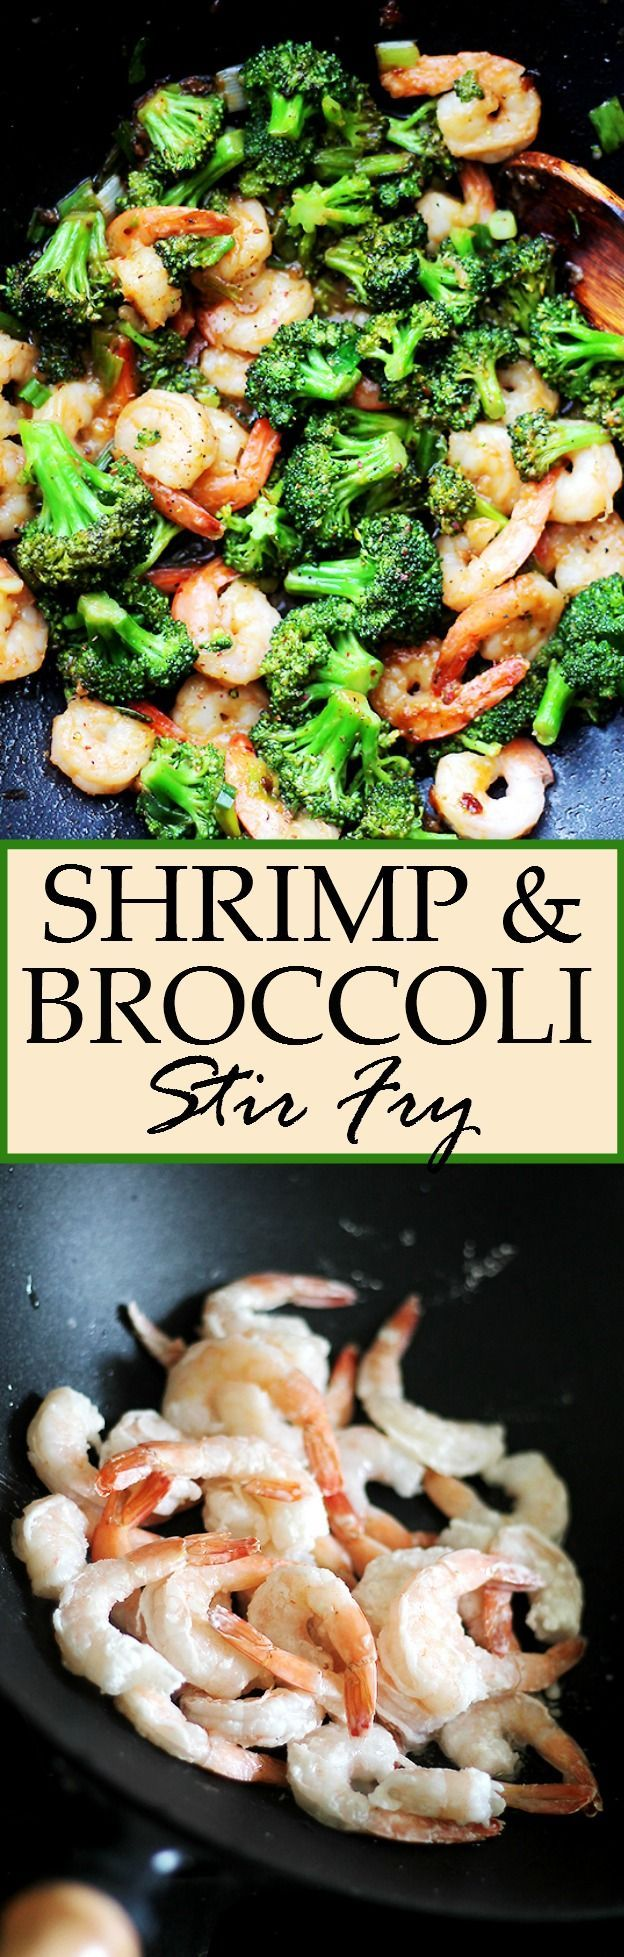 Shrimp and Broccoli Stir Fry | www.diethood.com | Sweet and sour, garlicky and delicious, this Shrimp and Broccoli Stir Fry is so easy to make and it only takes 20 minutes from start to finish!